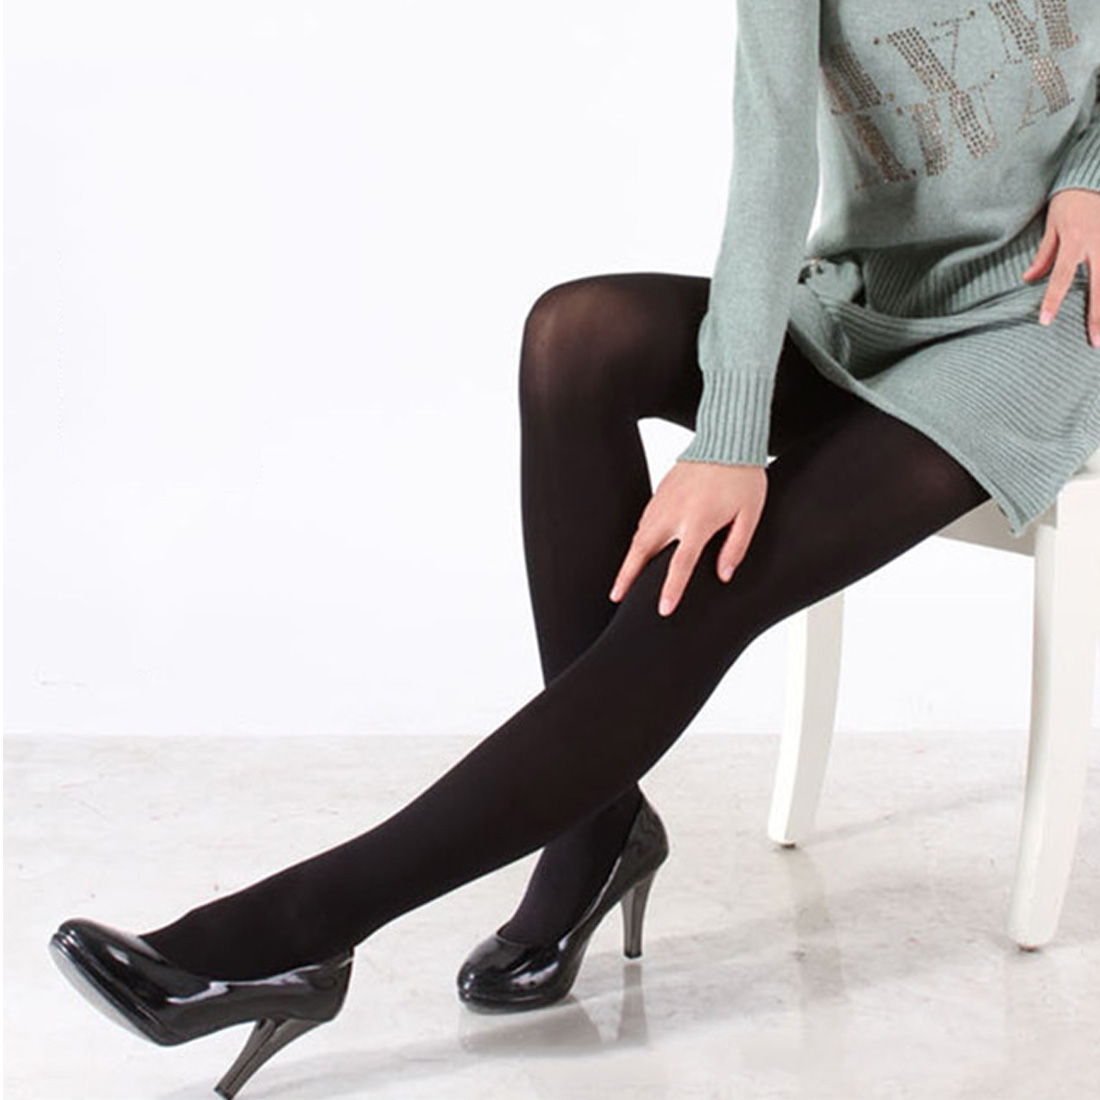 Woman 120D Pantyhose Warm Tights Black Color Plus Size Multicolour Tights Women Pantyhose New 2019